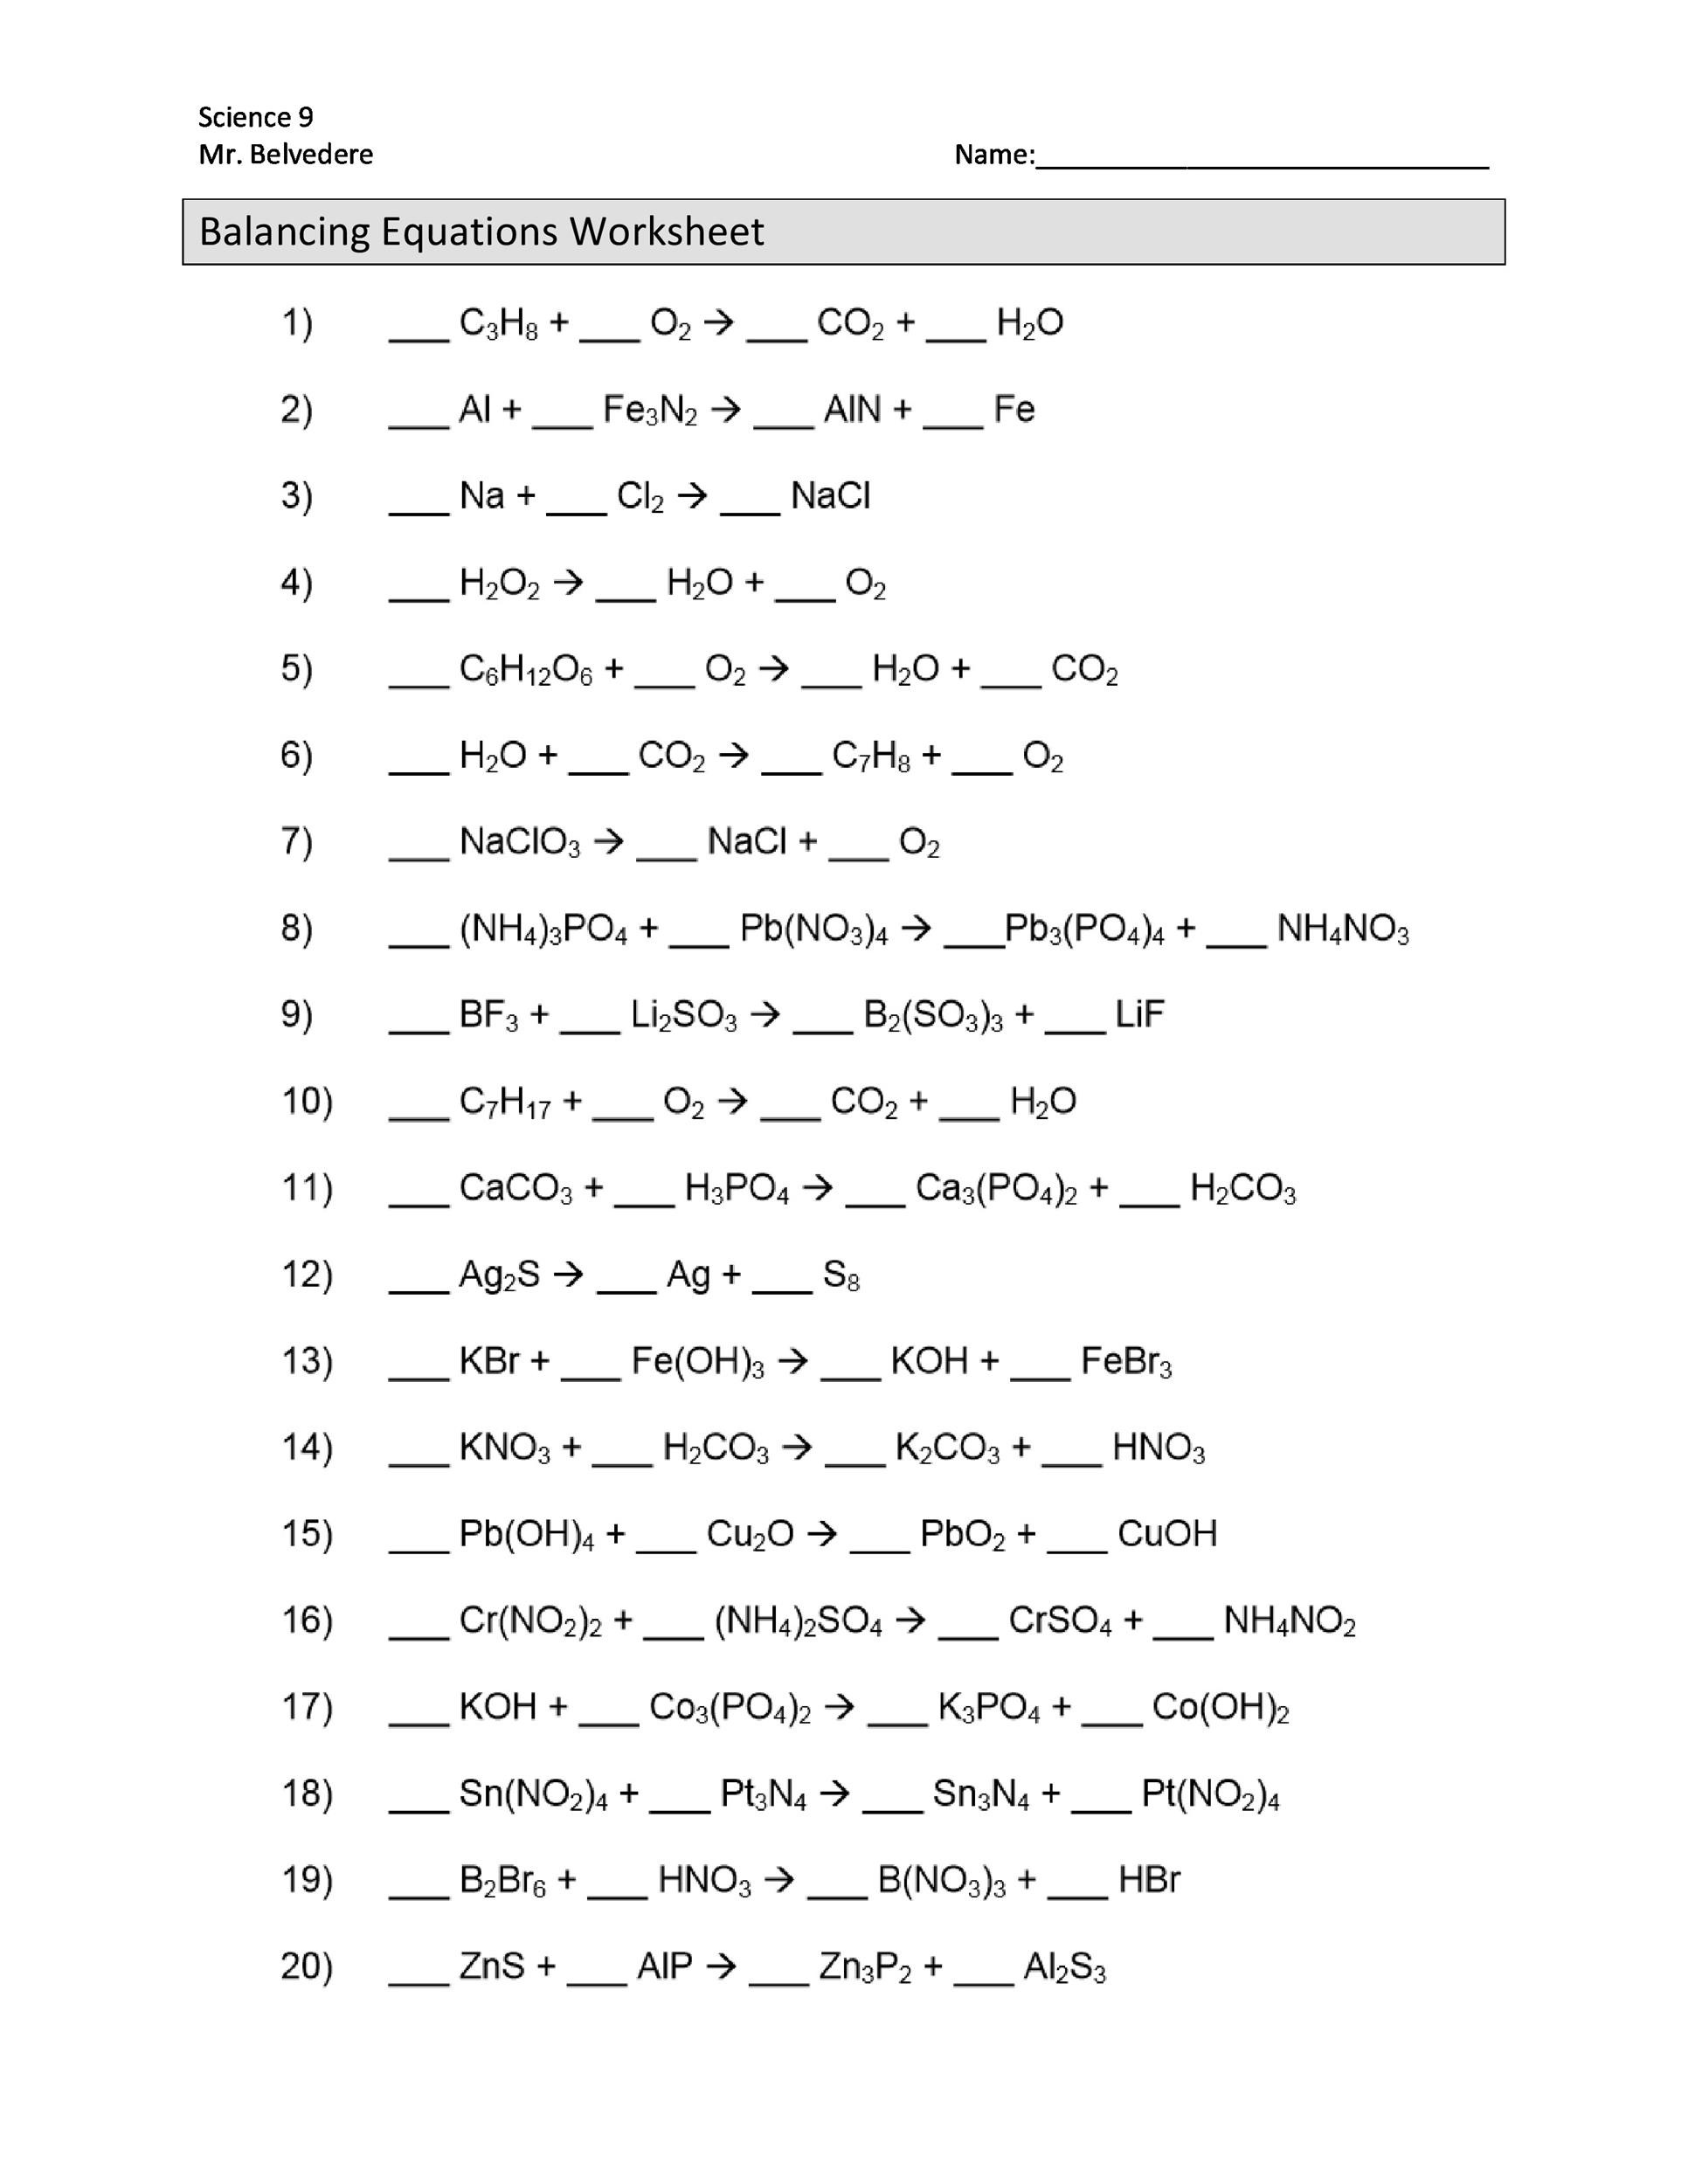 Practice Writing Chemical Equations Worksheet 49 Balancing Chemical Equations Worksheets [with Answers]